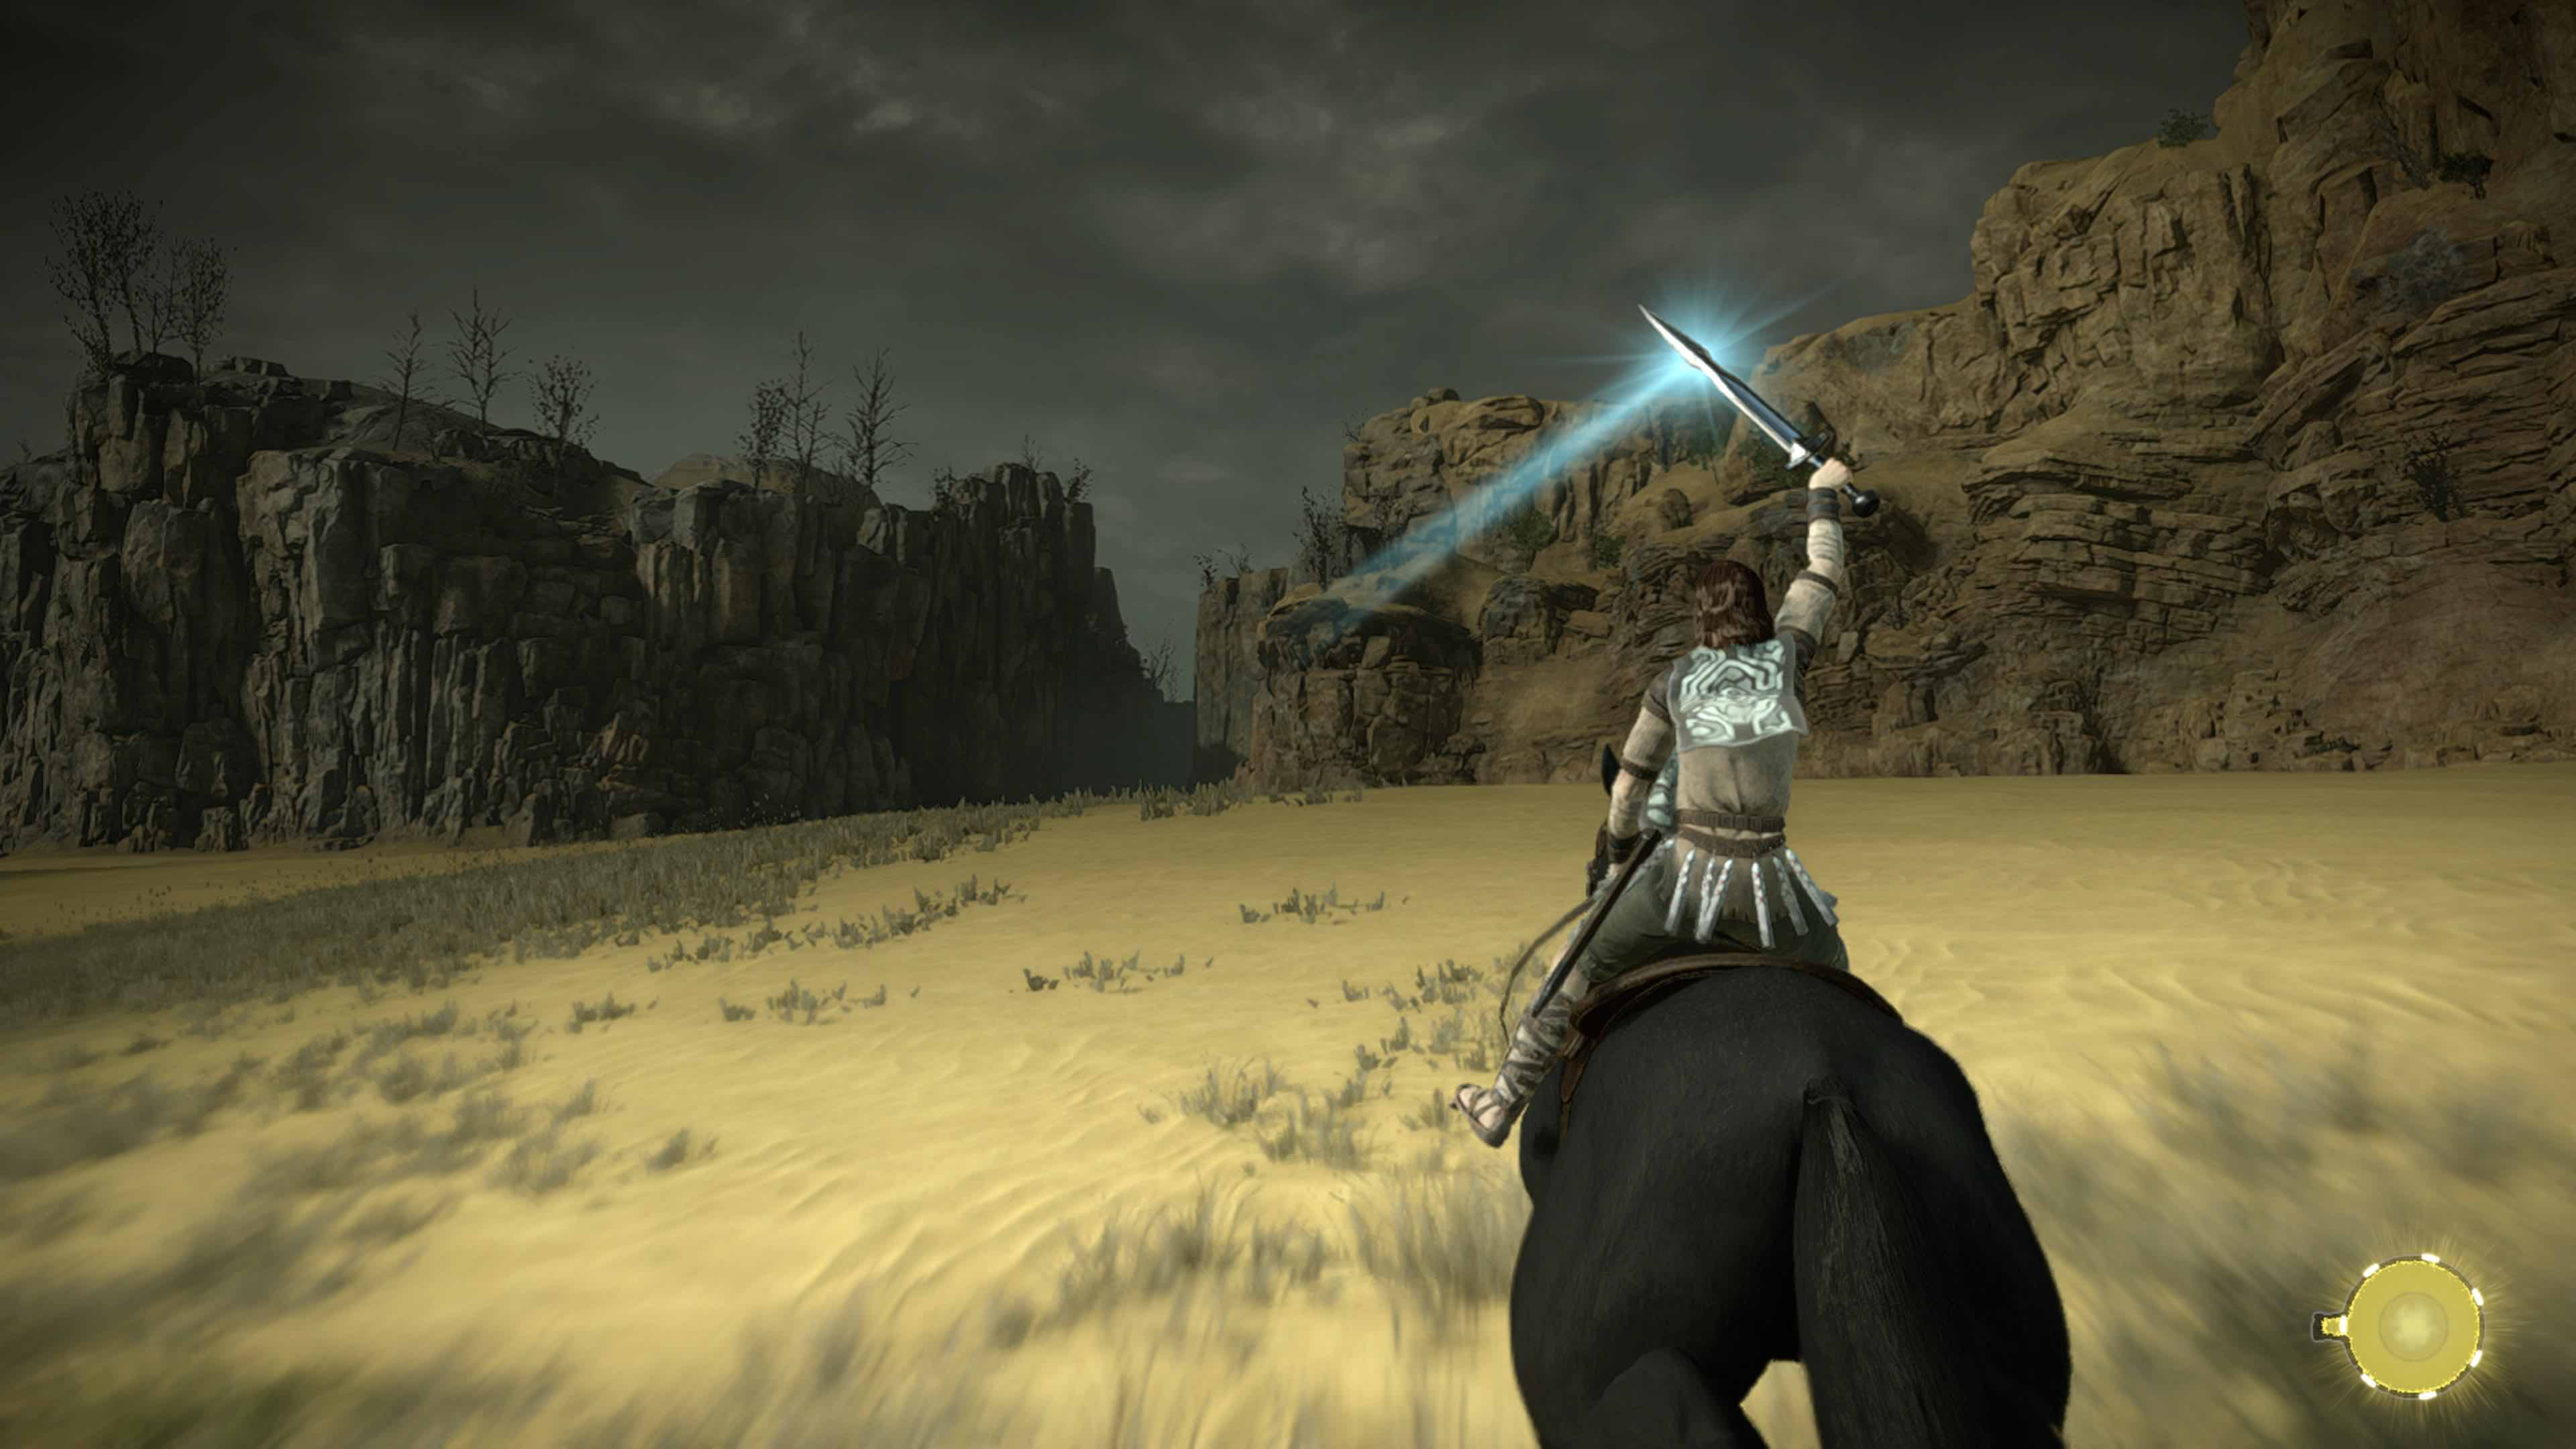 Shadow_of_the_Colossus_Coloso_3_1